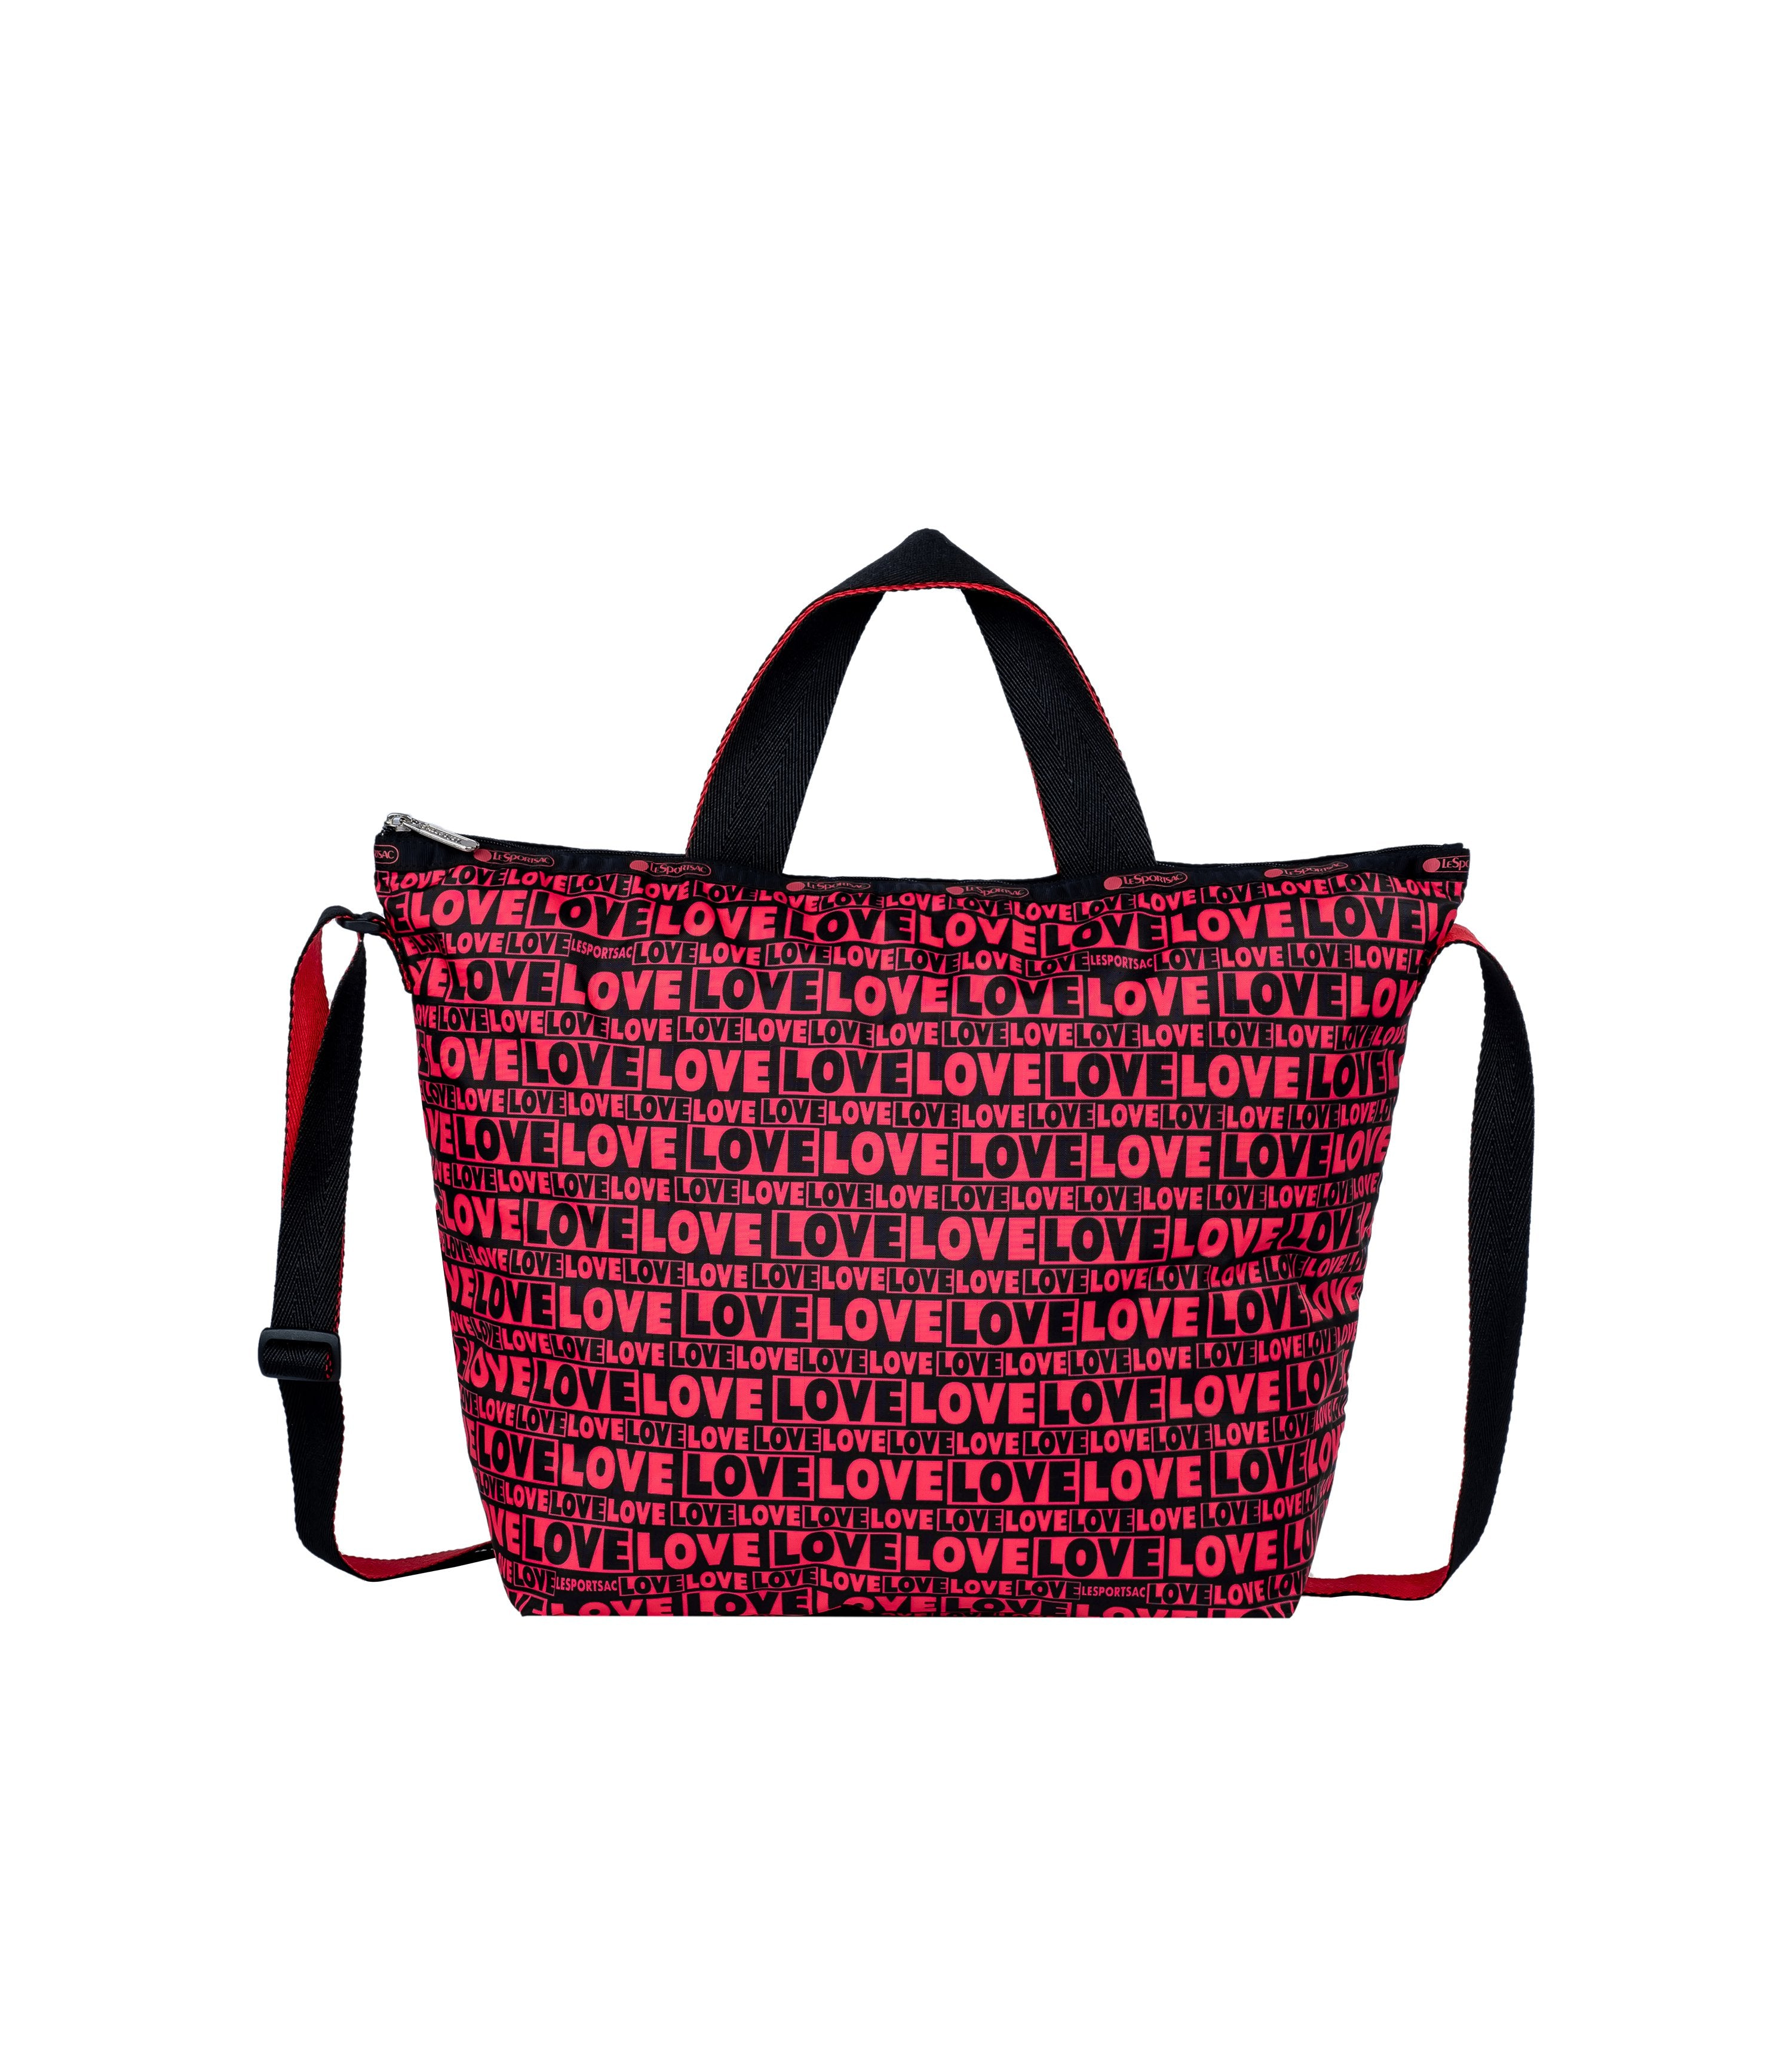 LeSportsac - Totes - Deluxe Easy Carry Tote - Only Love print